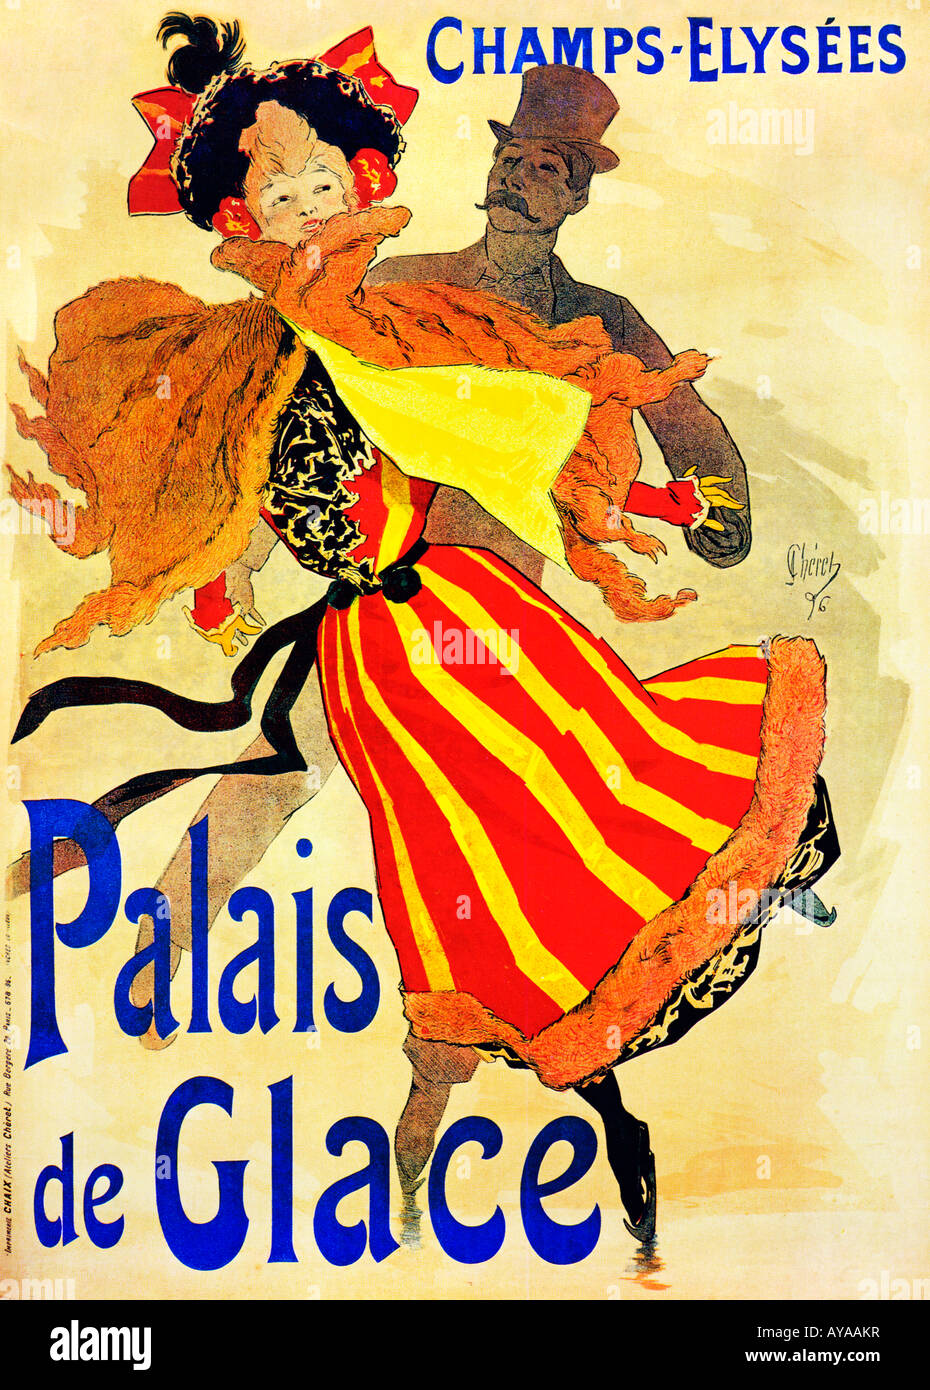 jules cheret Why jules ch ret credited with elevating lithography to an art form, jules ch ret's first original print depicted the moulin rouge, a subject that captured such artists as toulouse-lautrec.